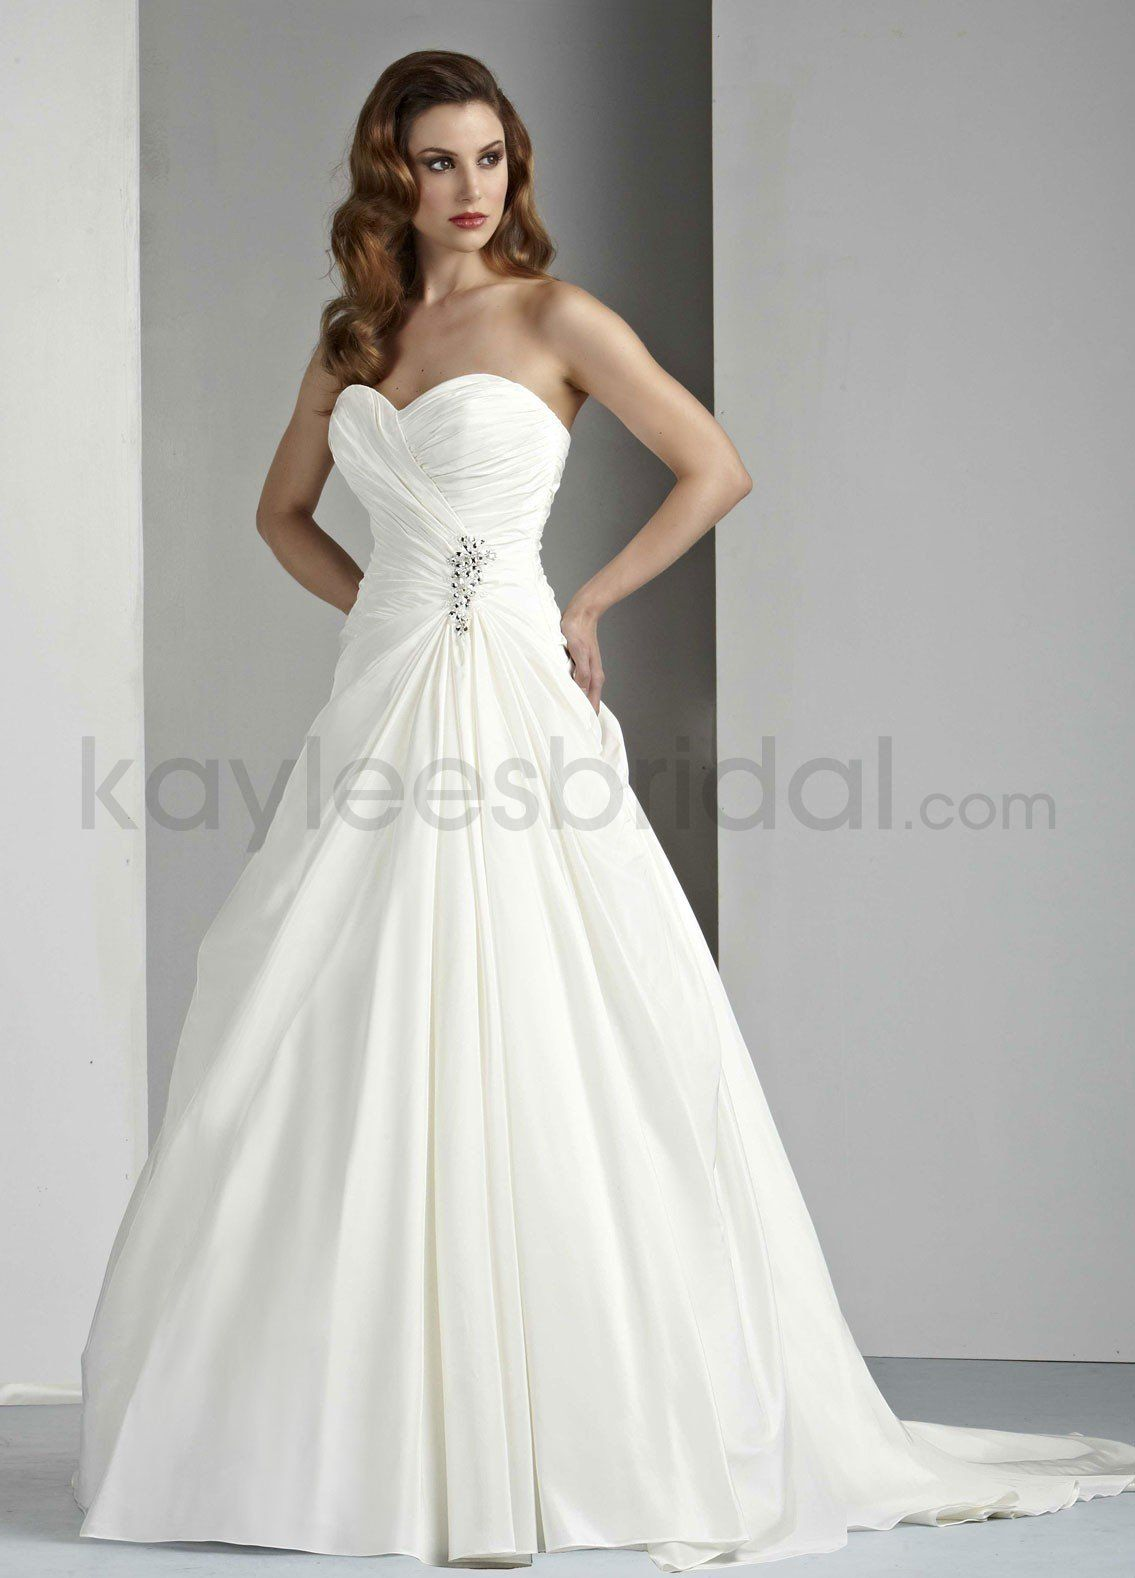 aline wedding dress sweetheart neckline weddings dresses